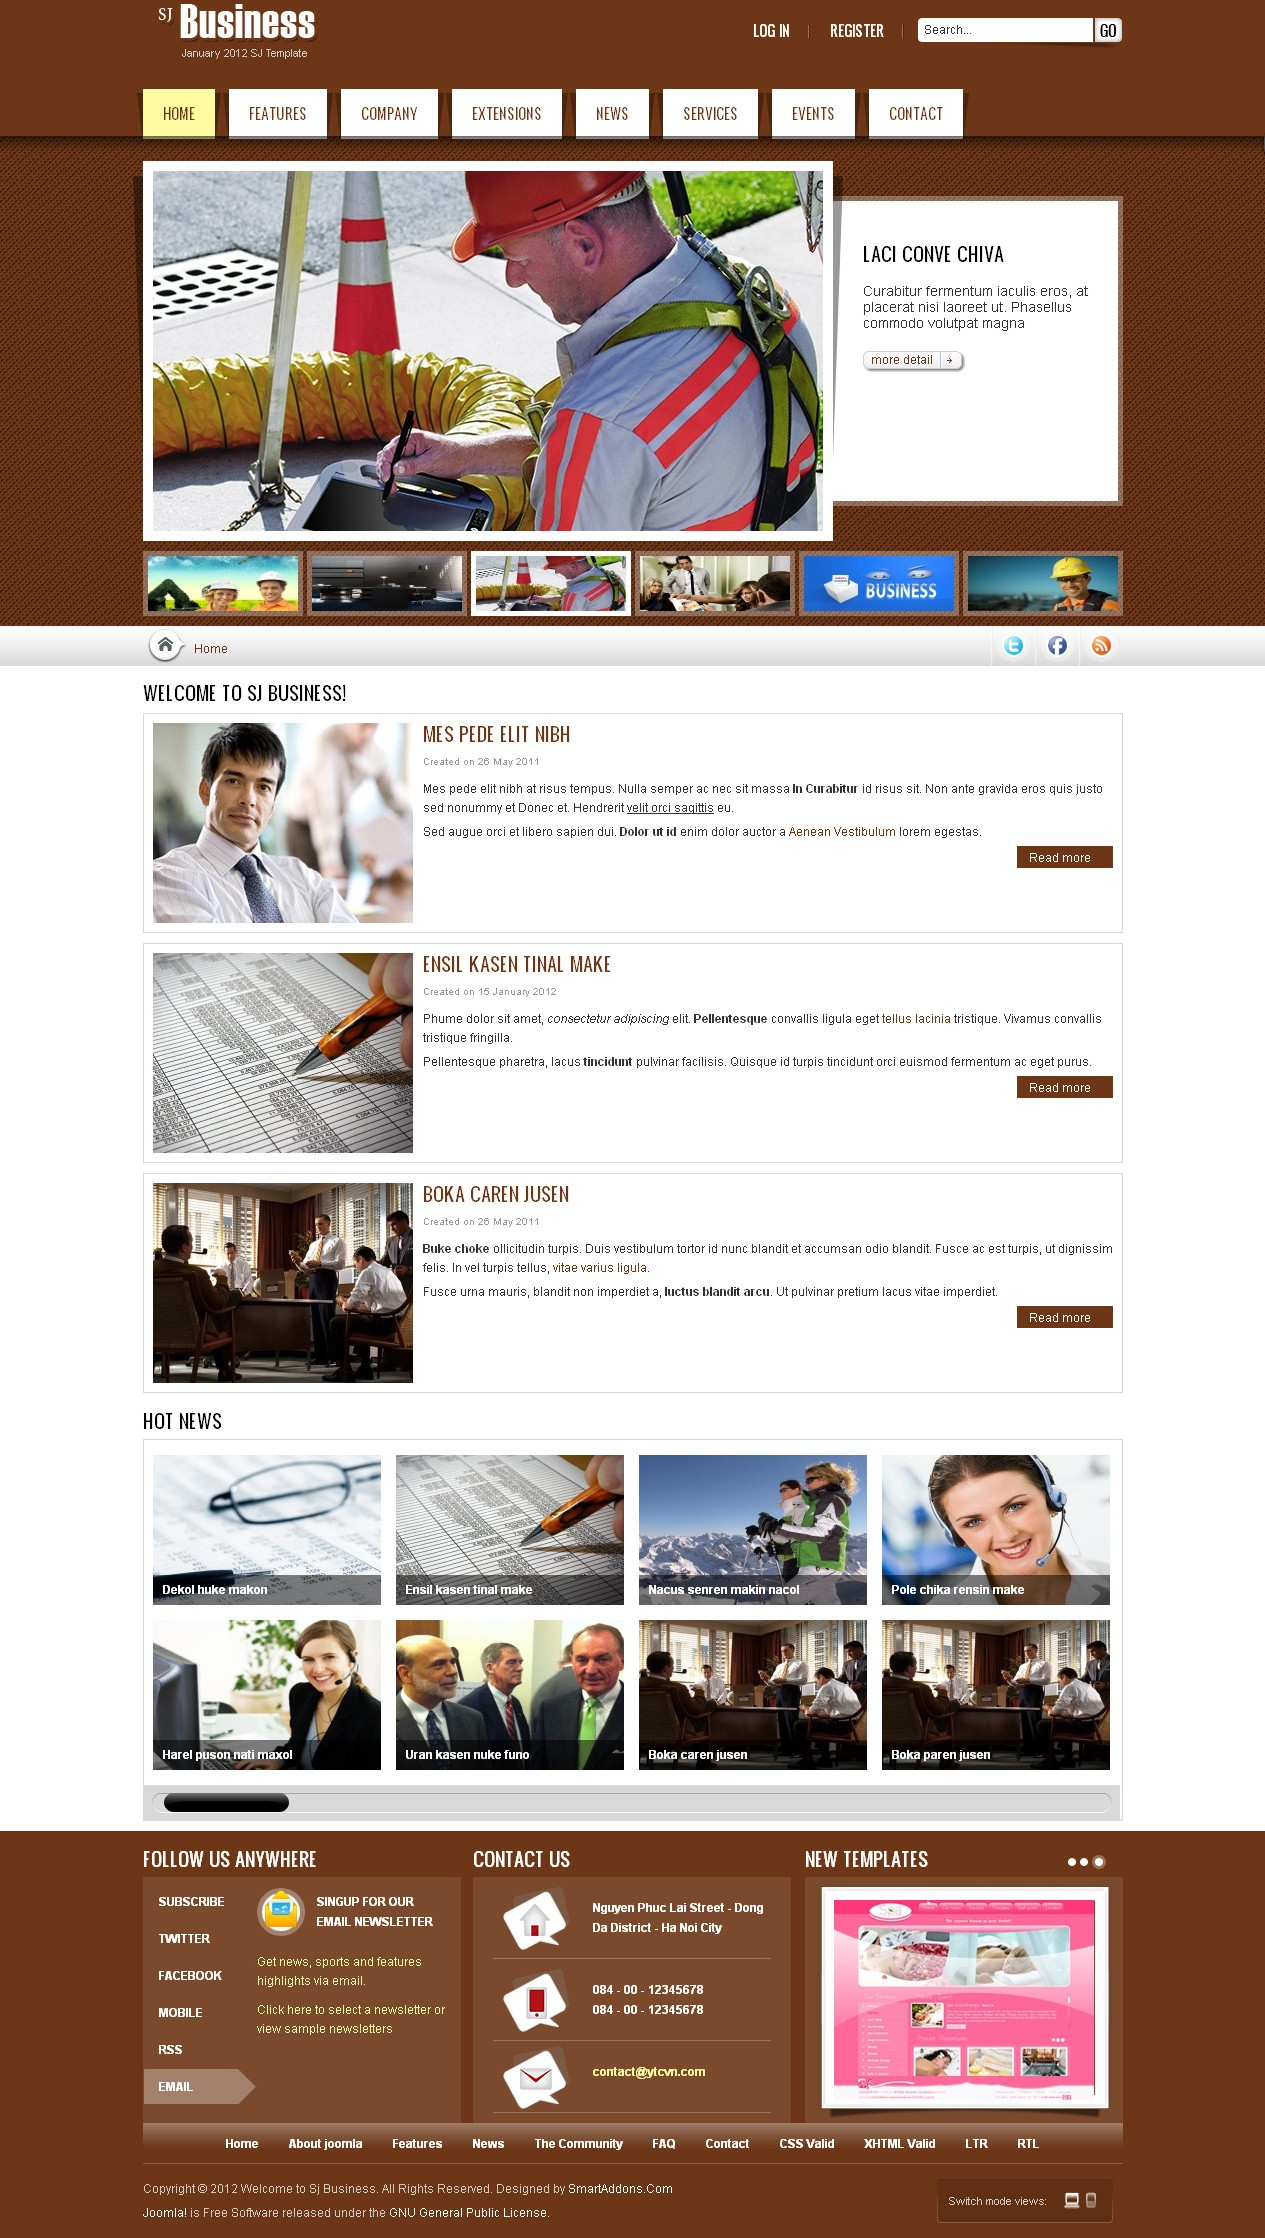 SJ Business - Joomla Business Template - 5.jpg